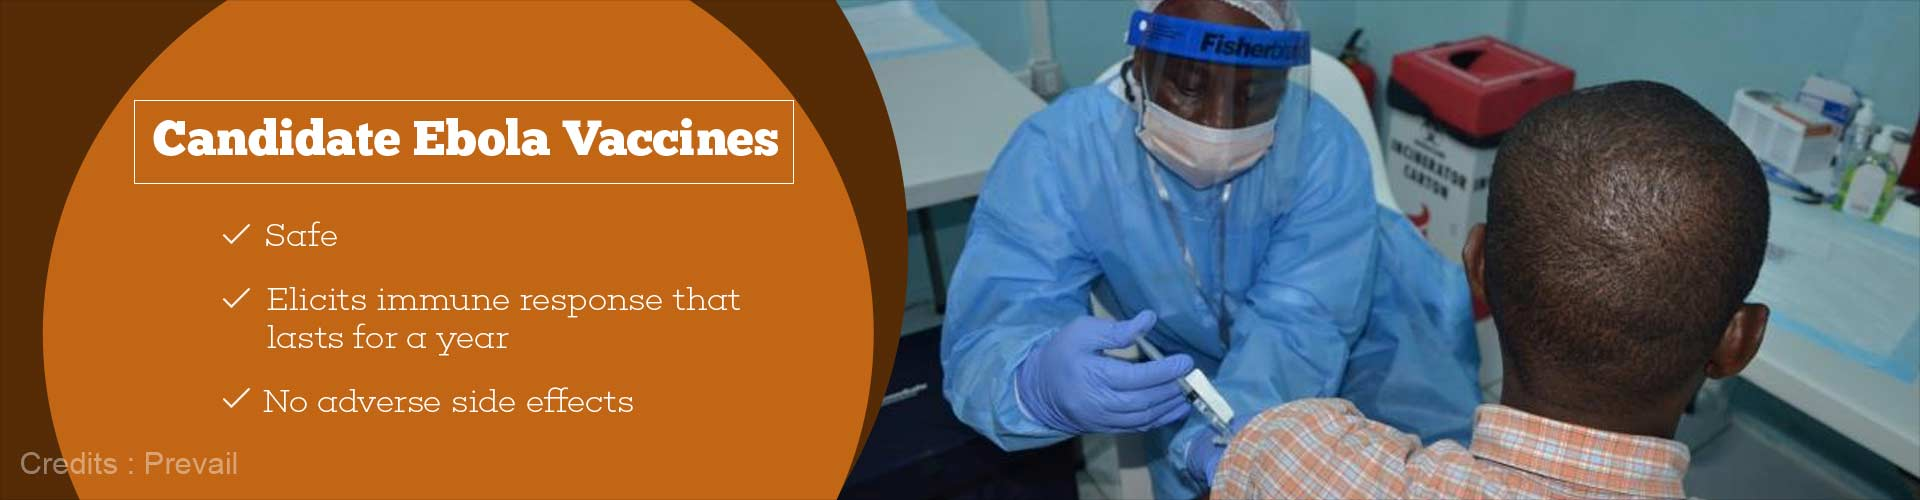 Phase 2 Clinical Trials of Two Candidate Ebola Vaccines in Liberia